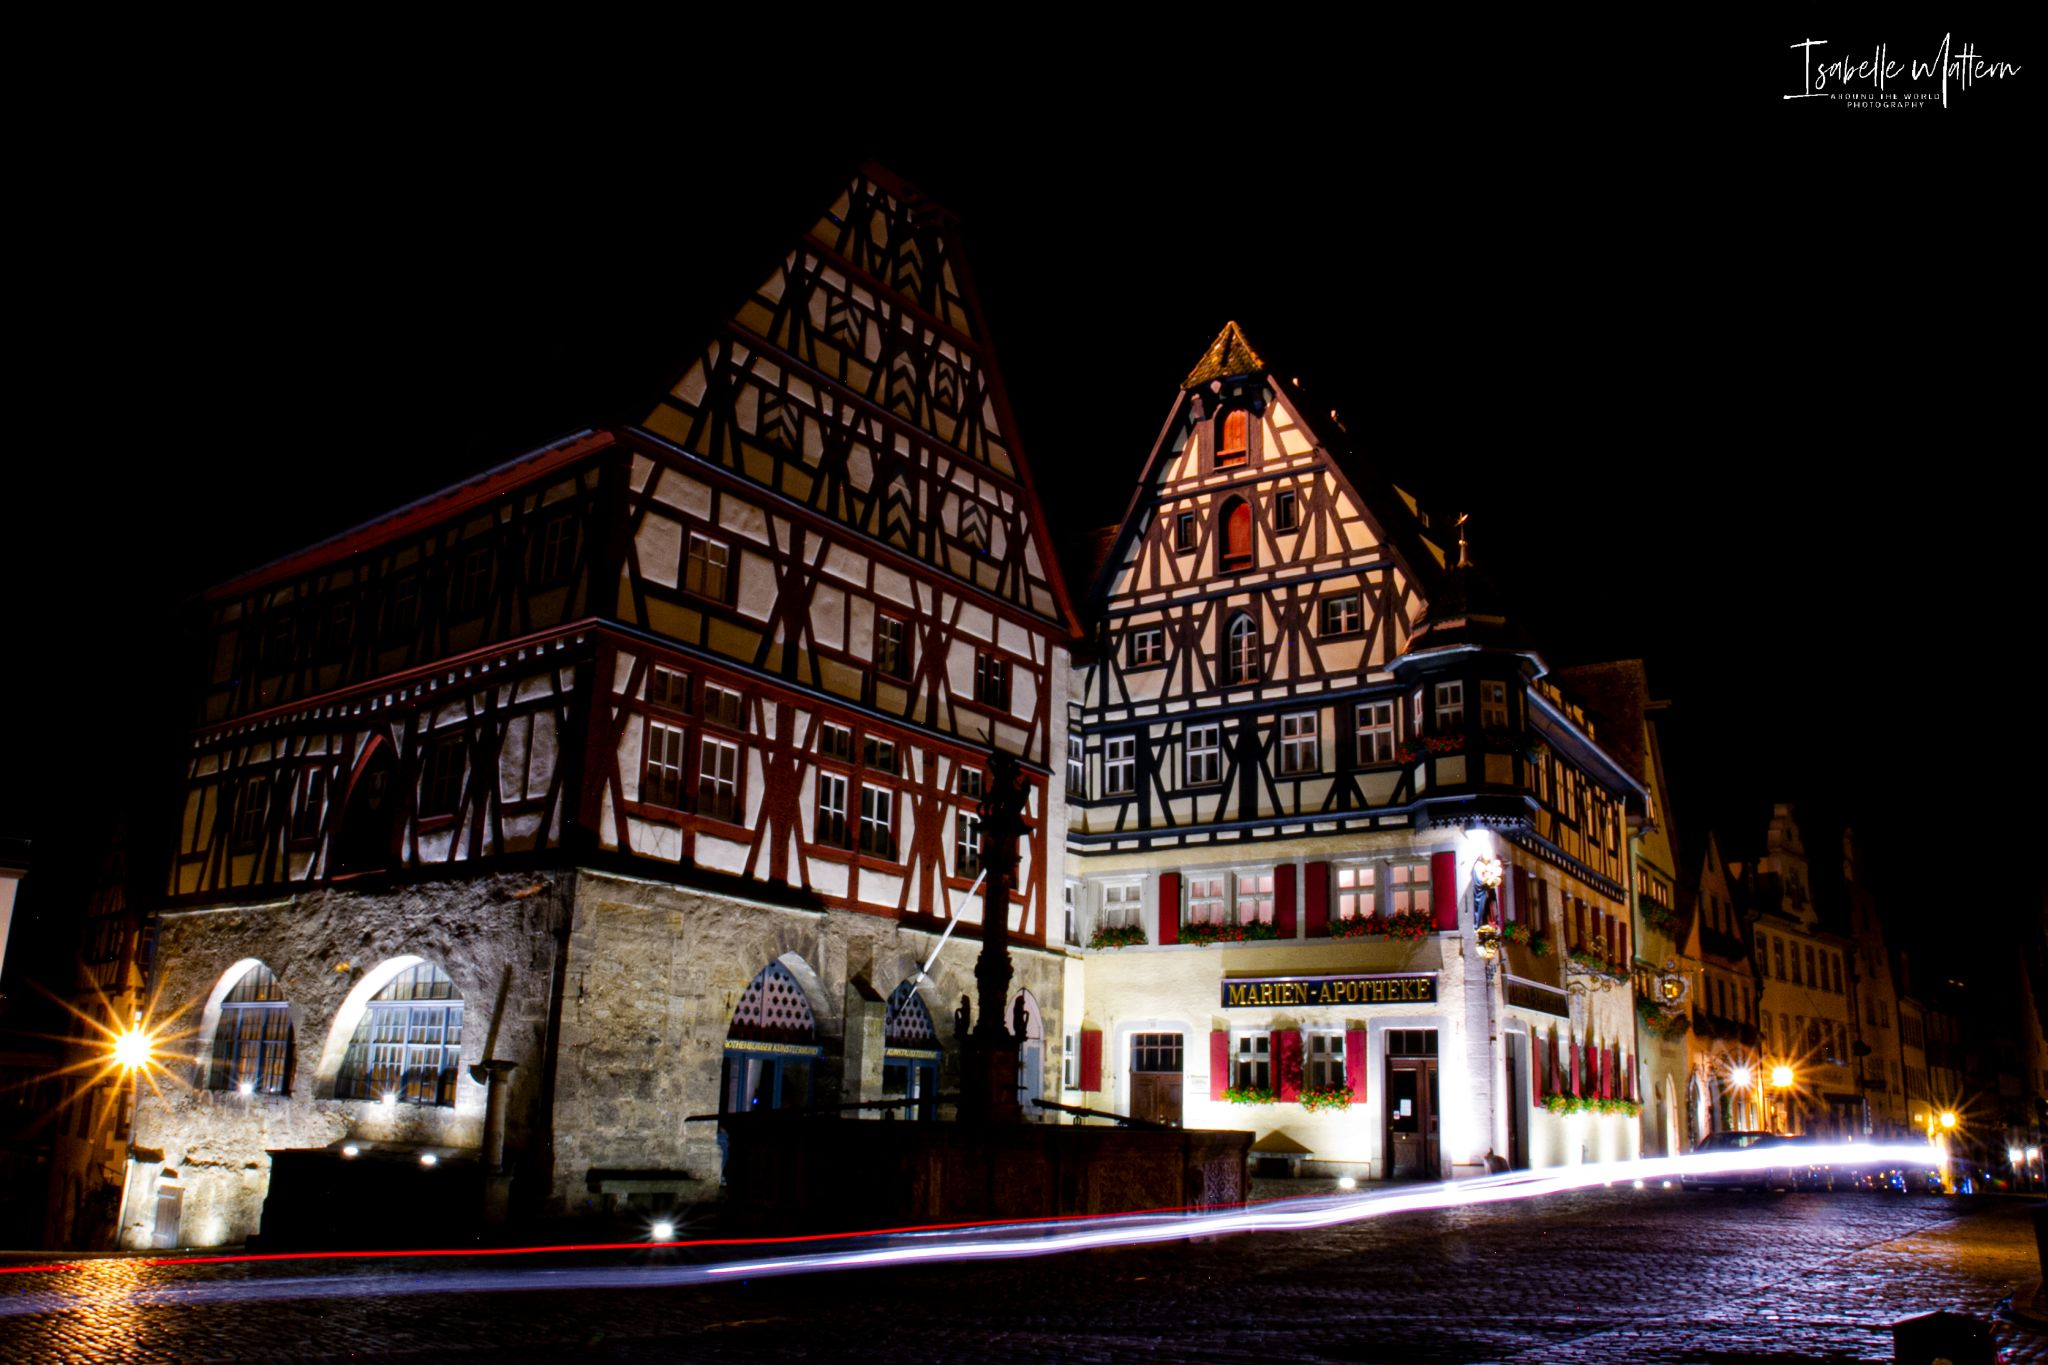 Market square in Rothenburg, Germany